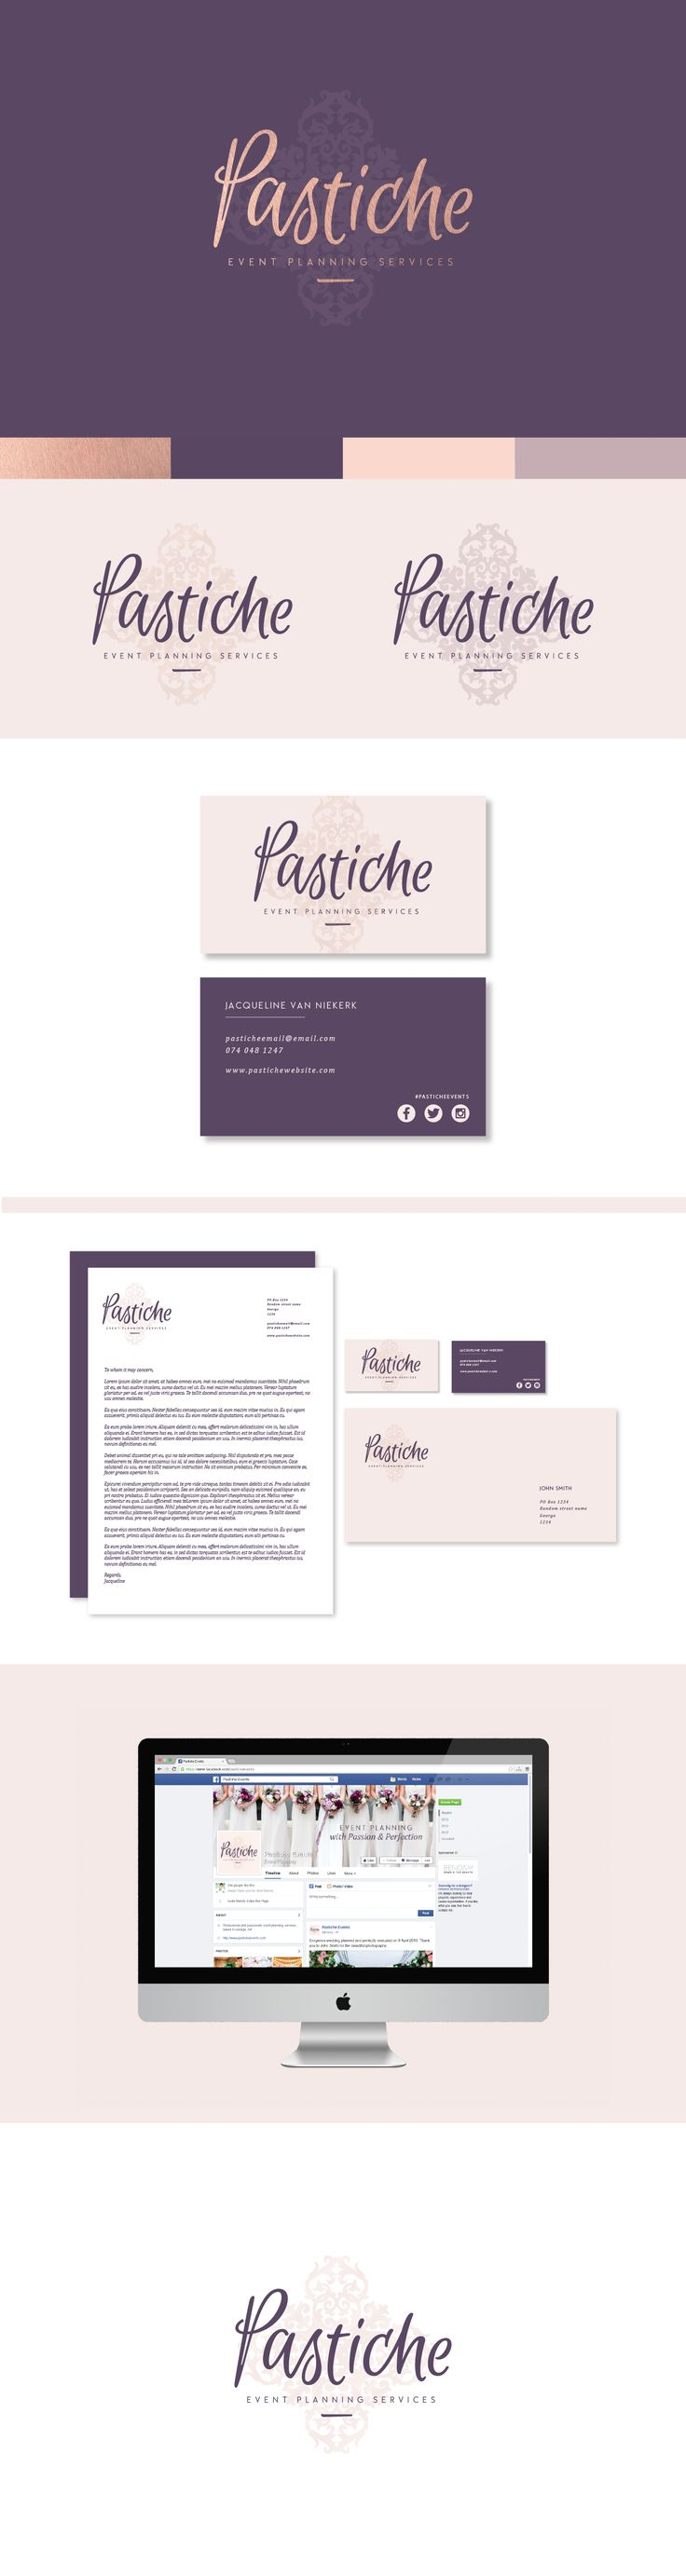 Logo design and identity for Pastiche Event Planning Services